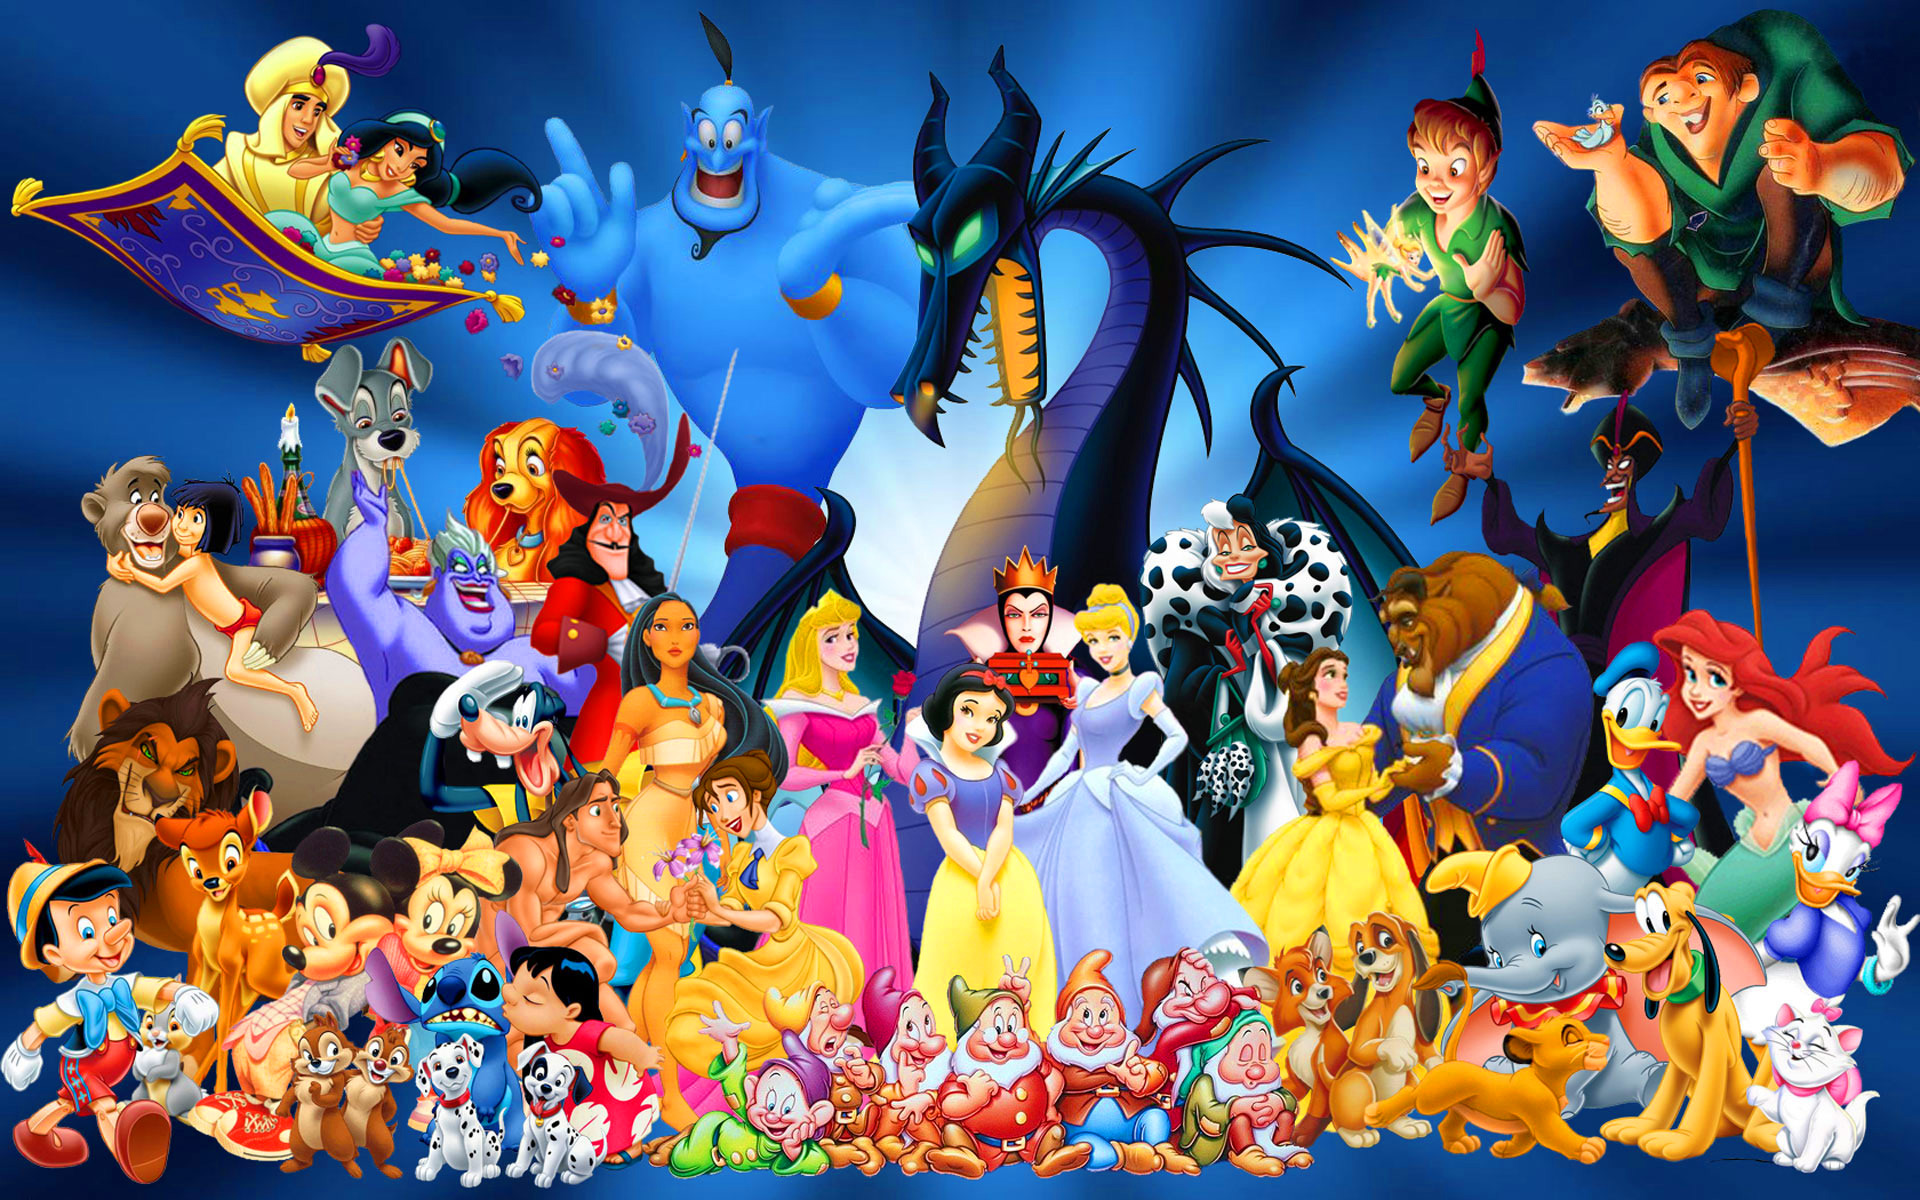 Disney Cartoon Characters computer desktop wallpaper 1920x1200